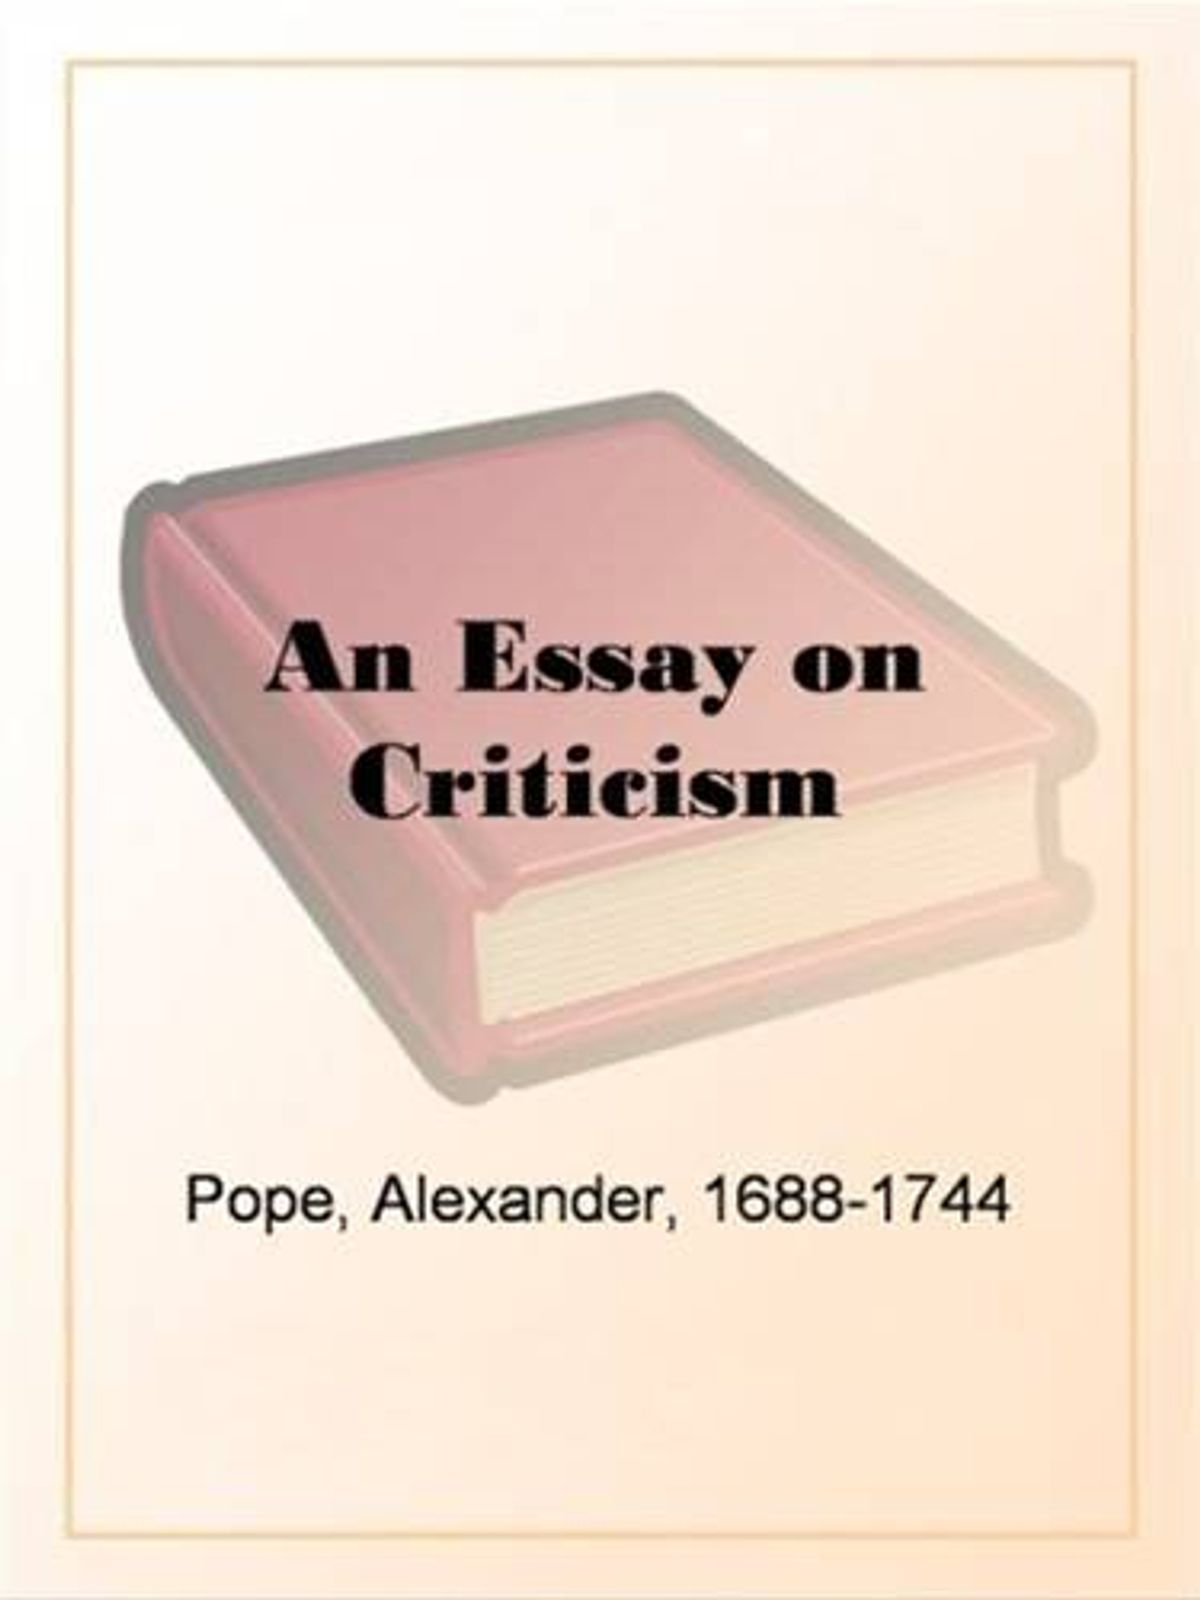 020 An Essay On Criticism Pope Unique Part 2 Pope's Was Written In Full